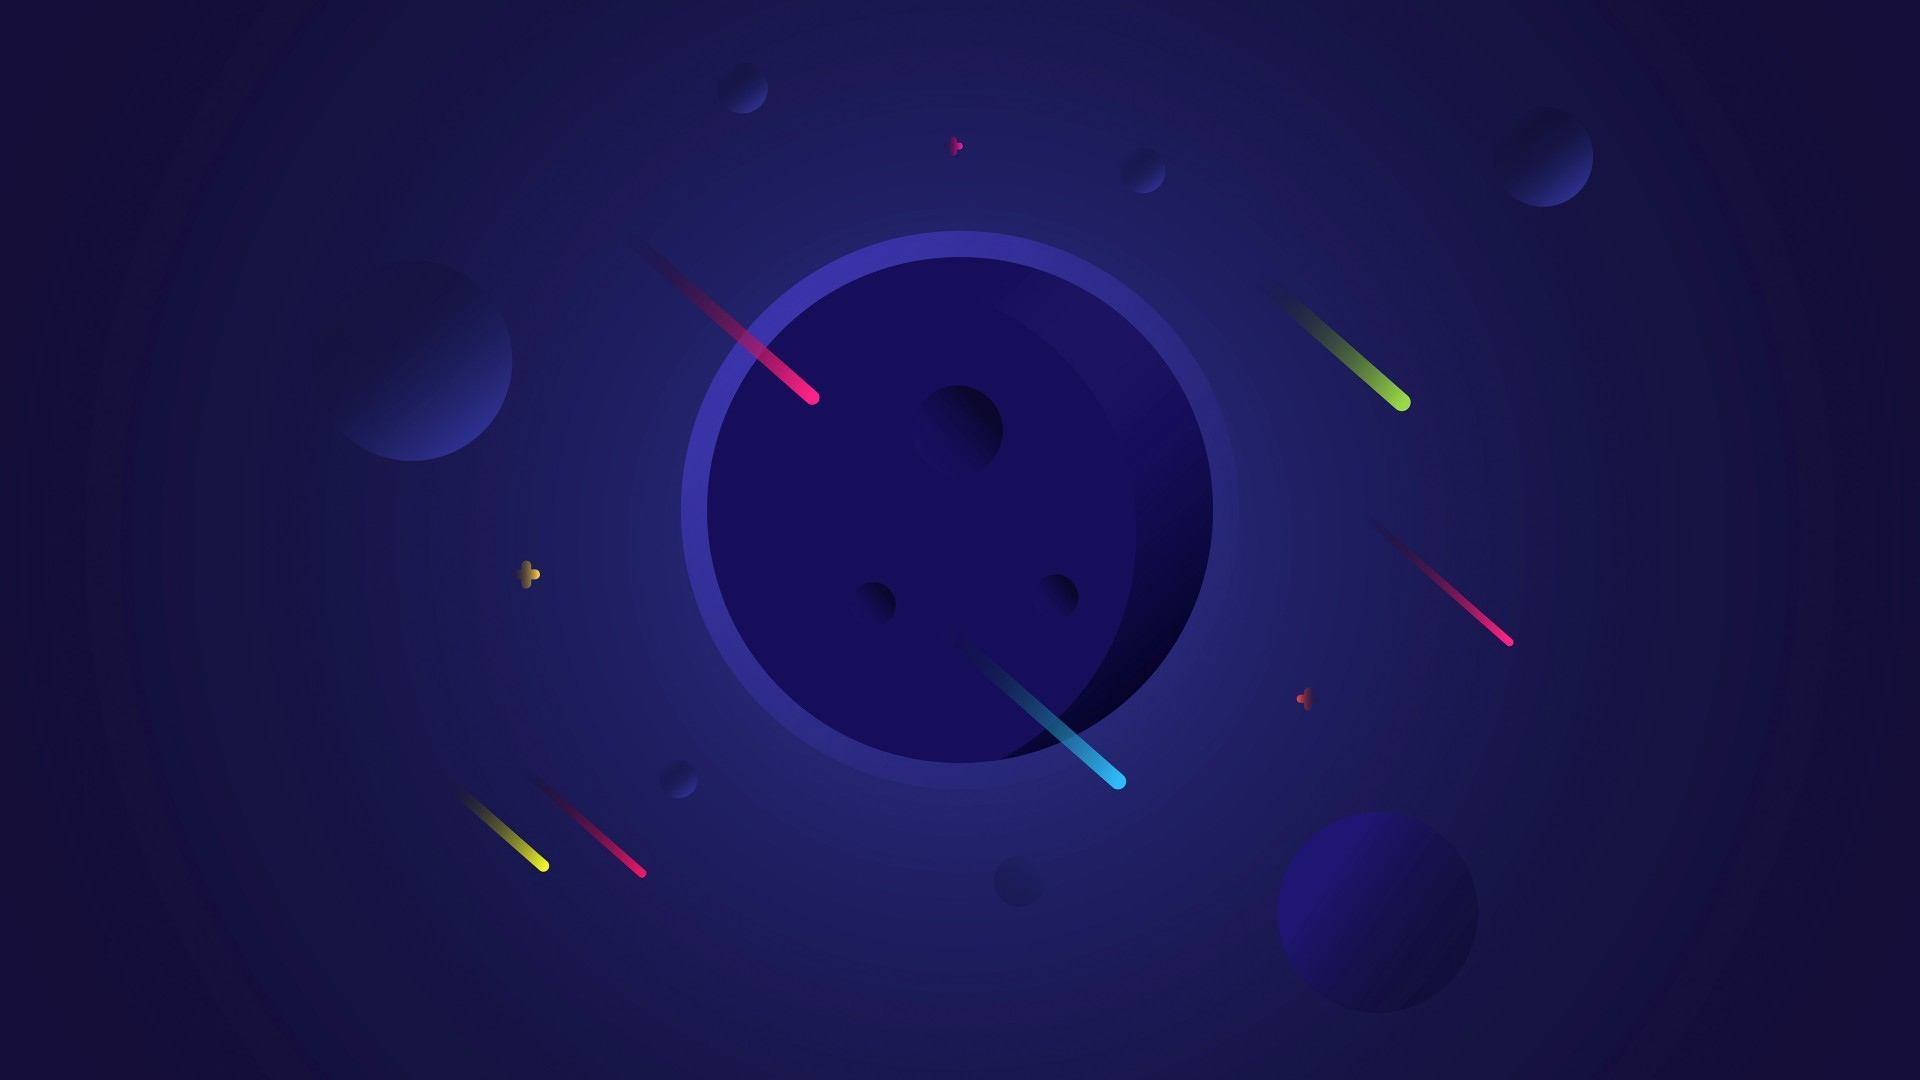 Space / Planets Wallpaper